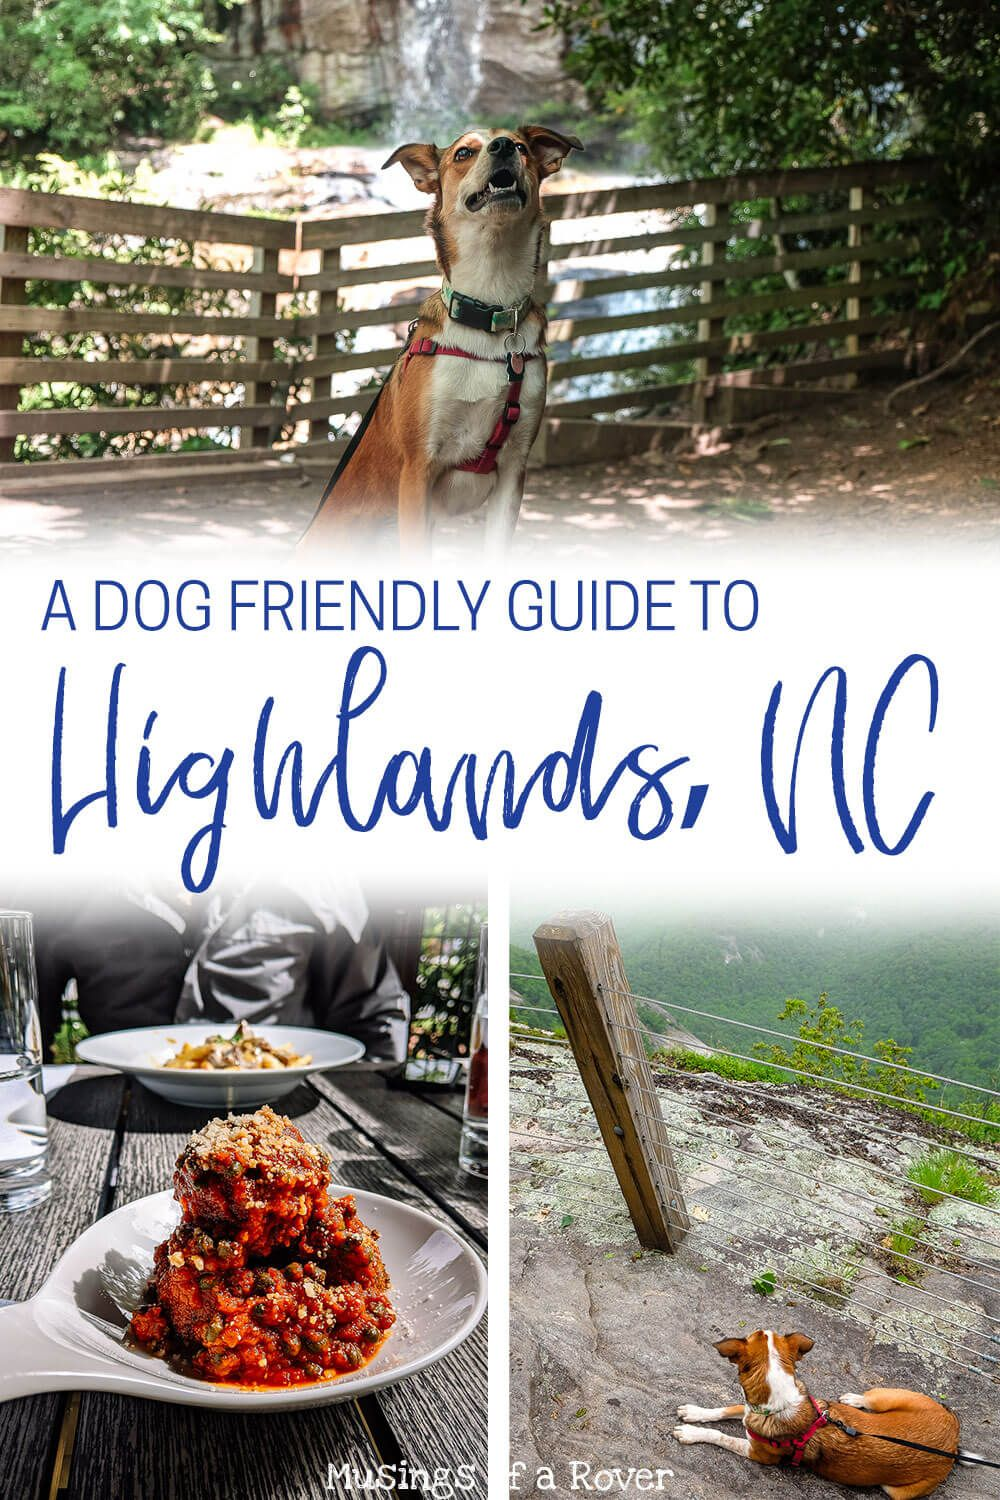 A dog friendly guide for your weekend trip to Highlands, NC. Includes where to stay, where to eat, and things to do including hikes, waterfalls, attractions, breweries, and more. If you need a mountain escape but want to bring your dog along, then Highlands might be for you!